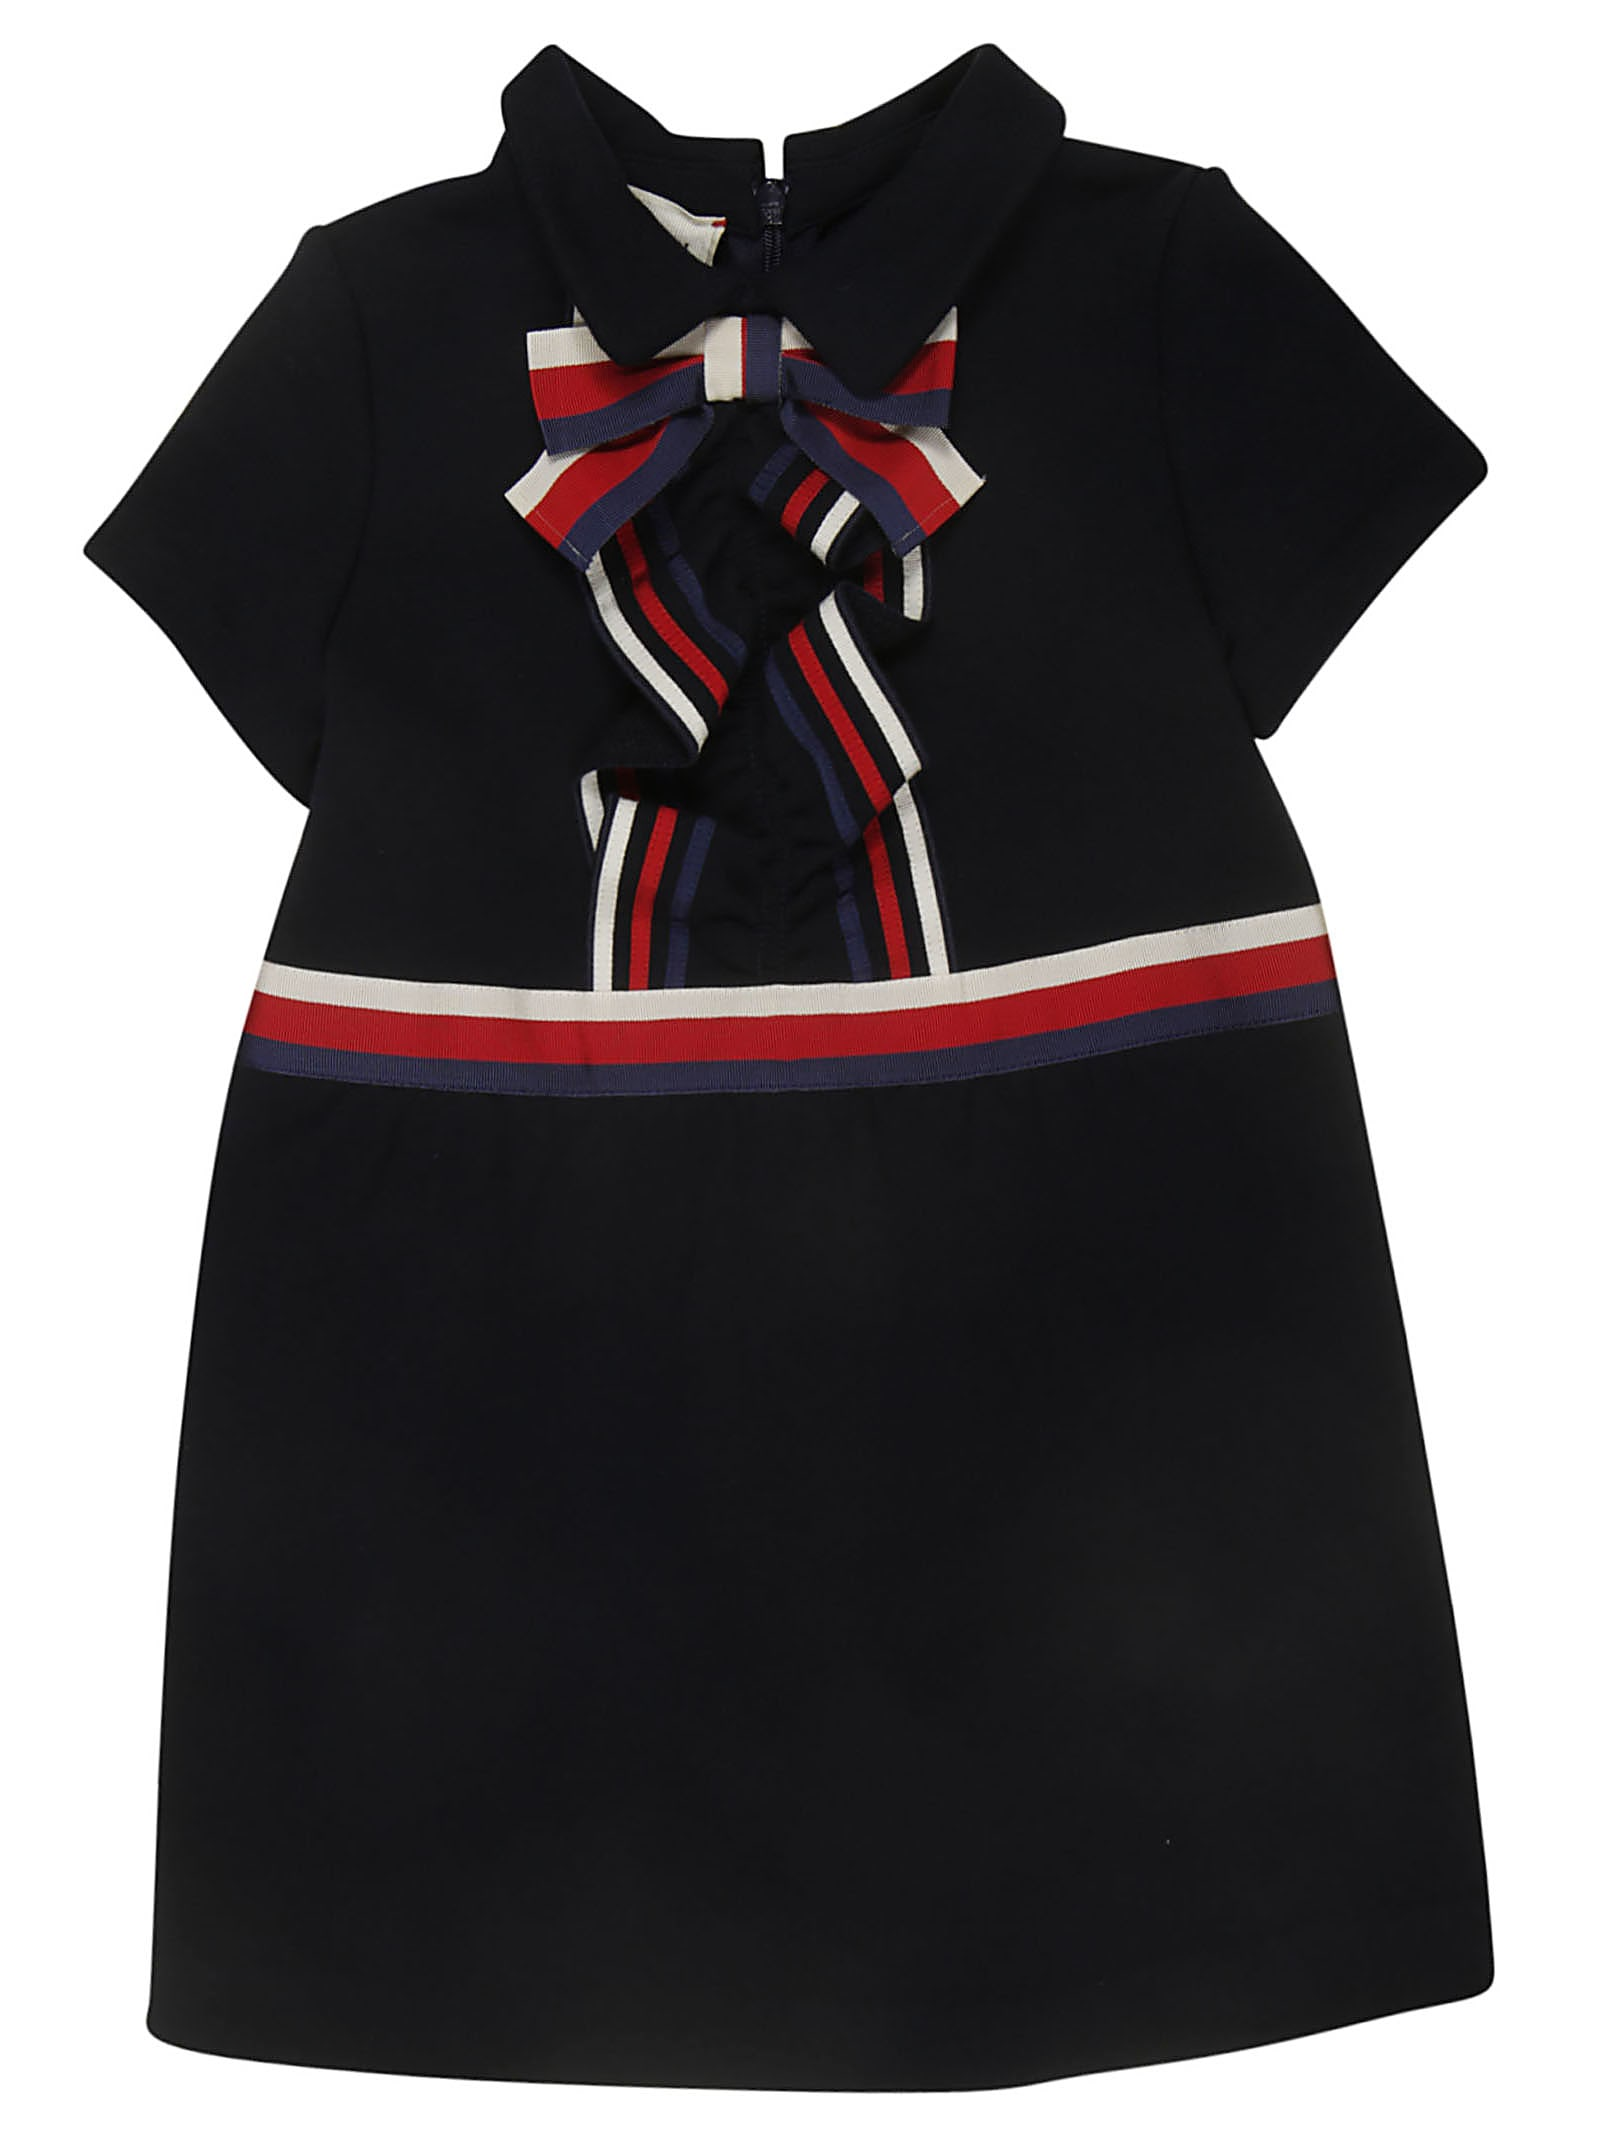 Gucci Ribbon Dress